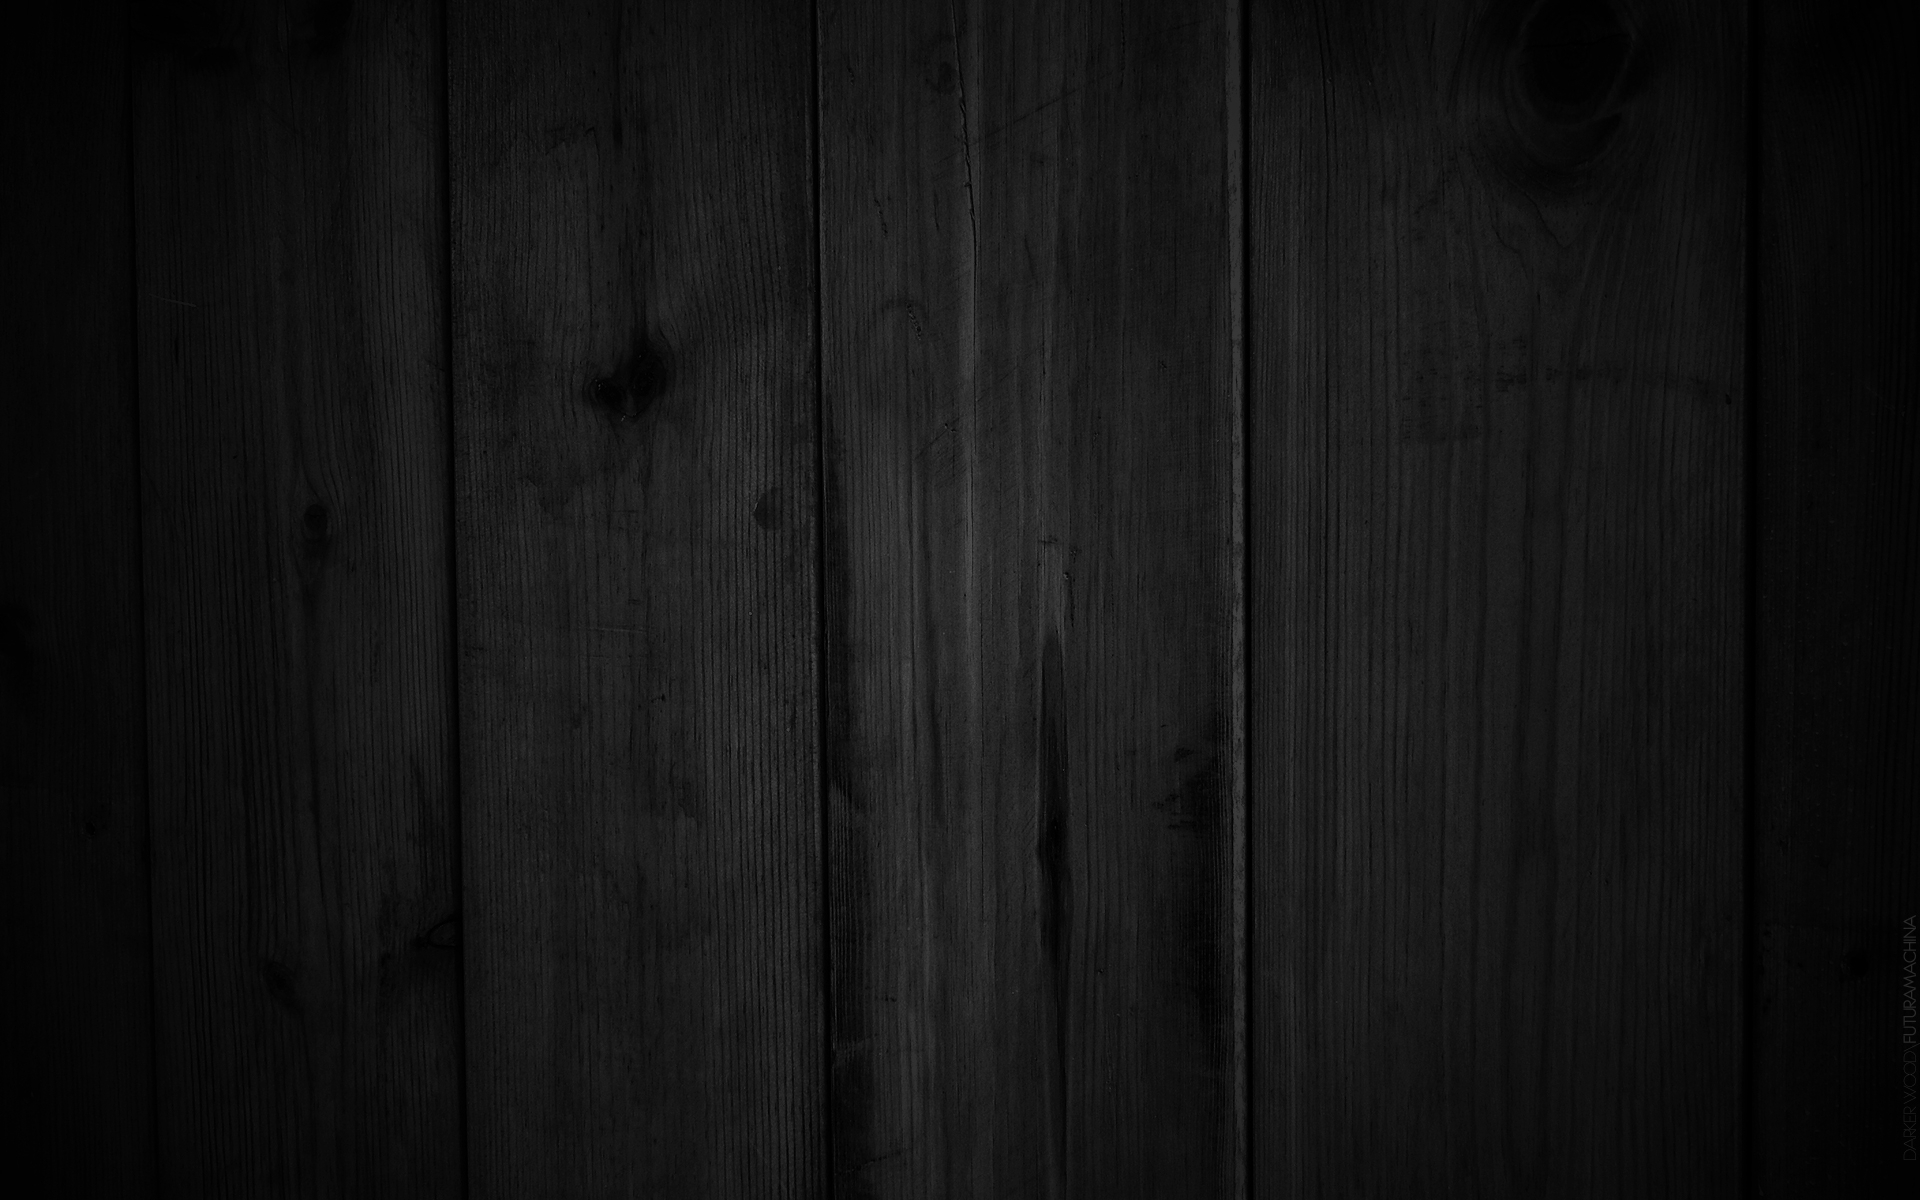 Download the following Dark Background 18328 image by clicking the ...